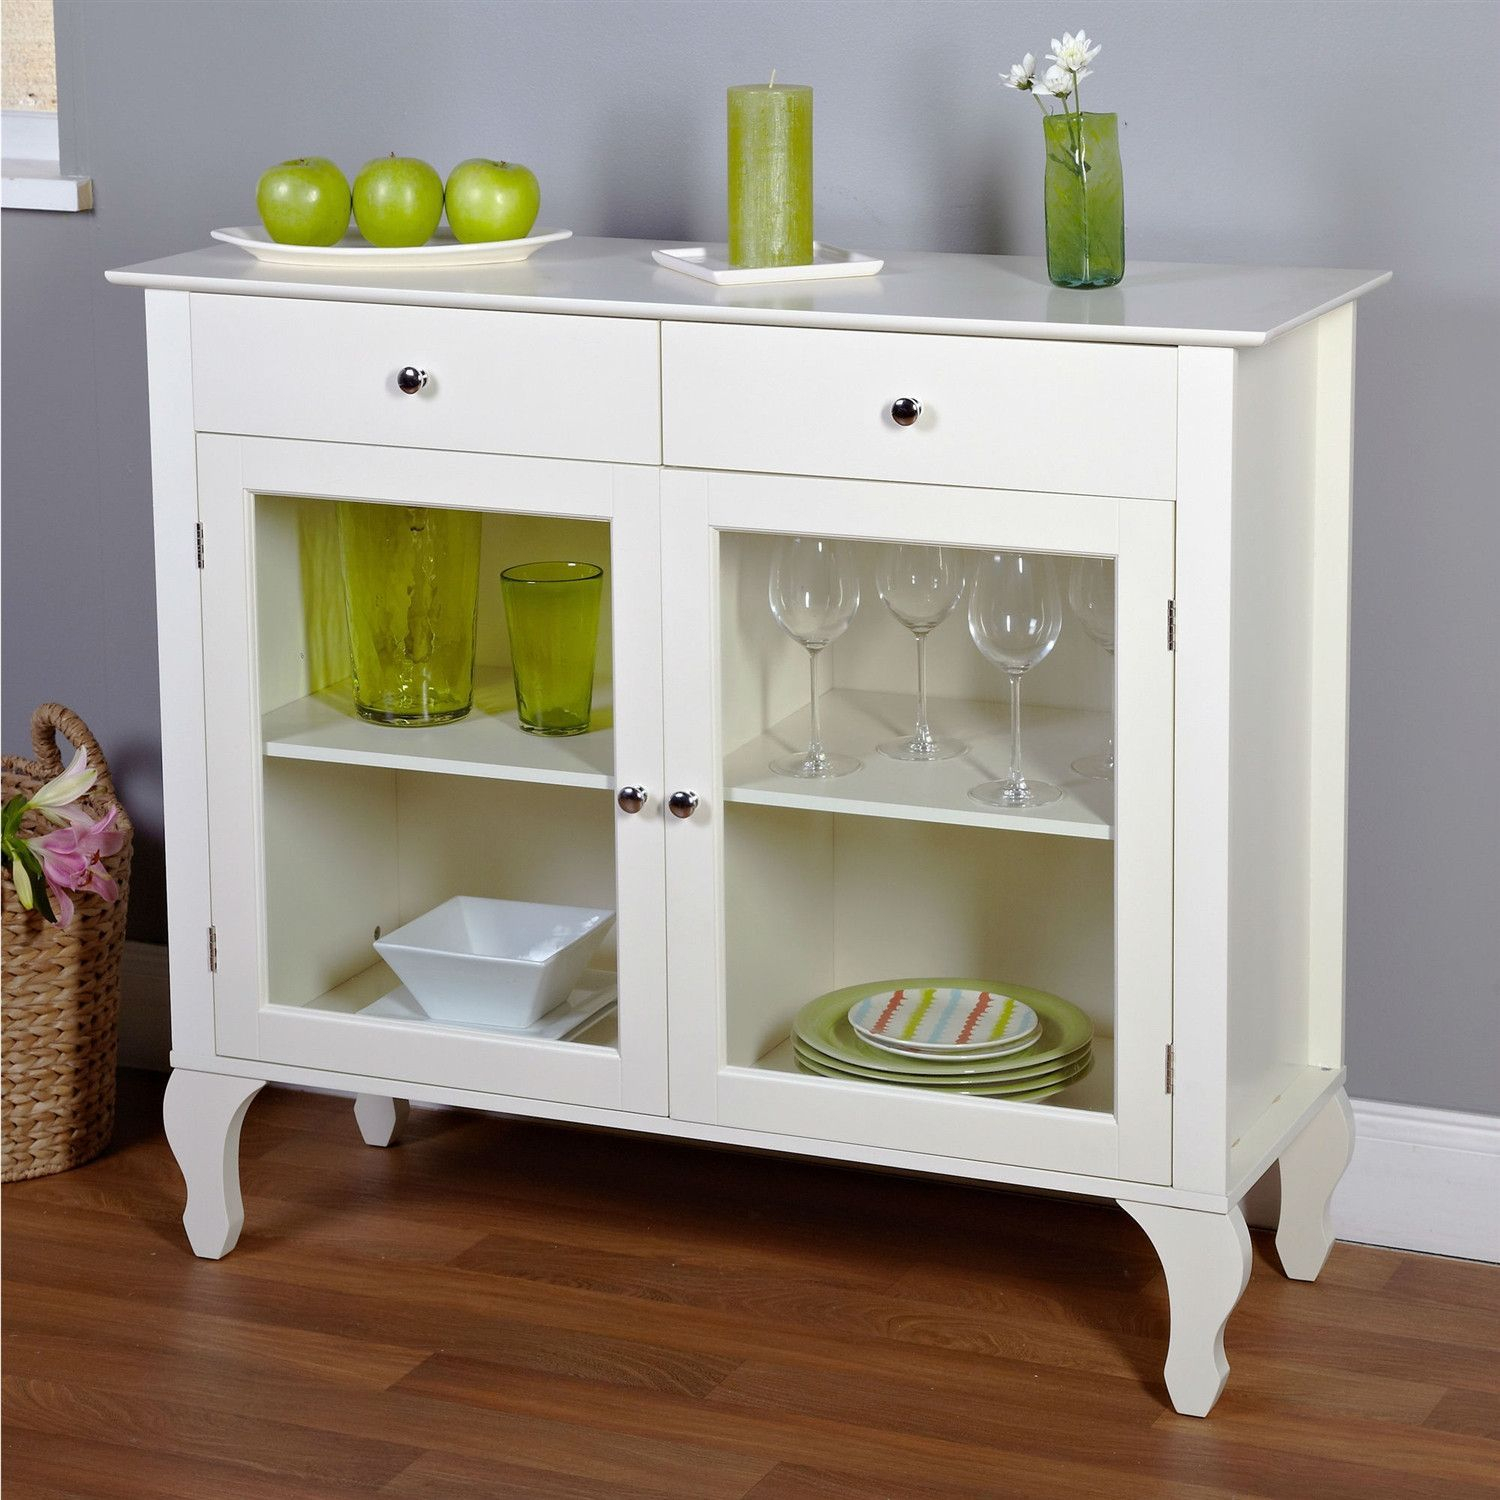 Antique White Sideboard Buffet Console Table With Glass Regarding Simple Living Layla Black Buffets (View 4 of 30)